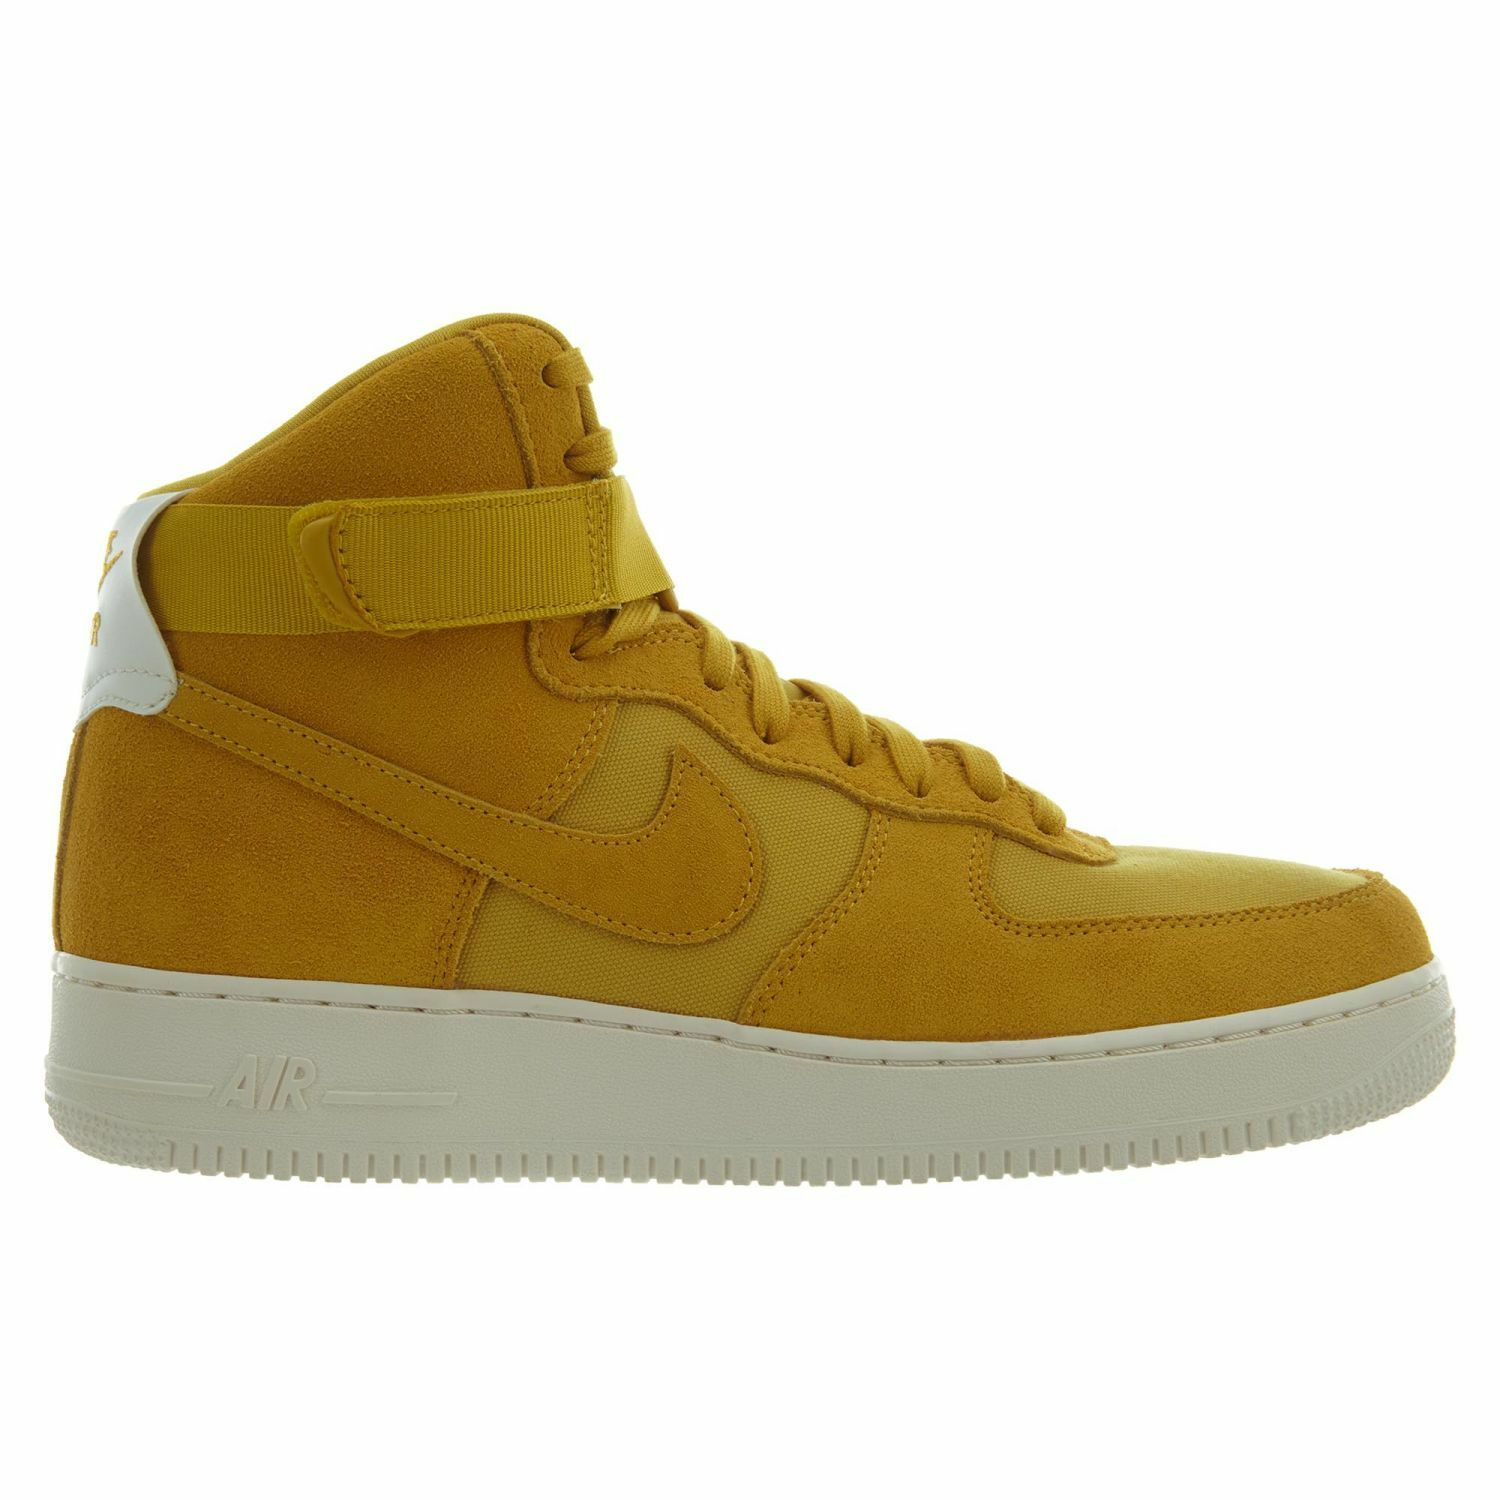 Nike Air Force 1 High 07 Suede Mens AQ8649-700 Yellow Ochre Sail shoes Size 12